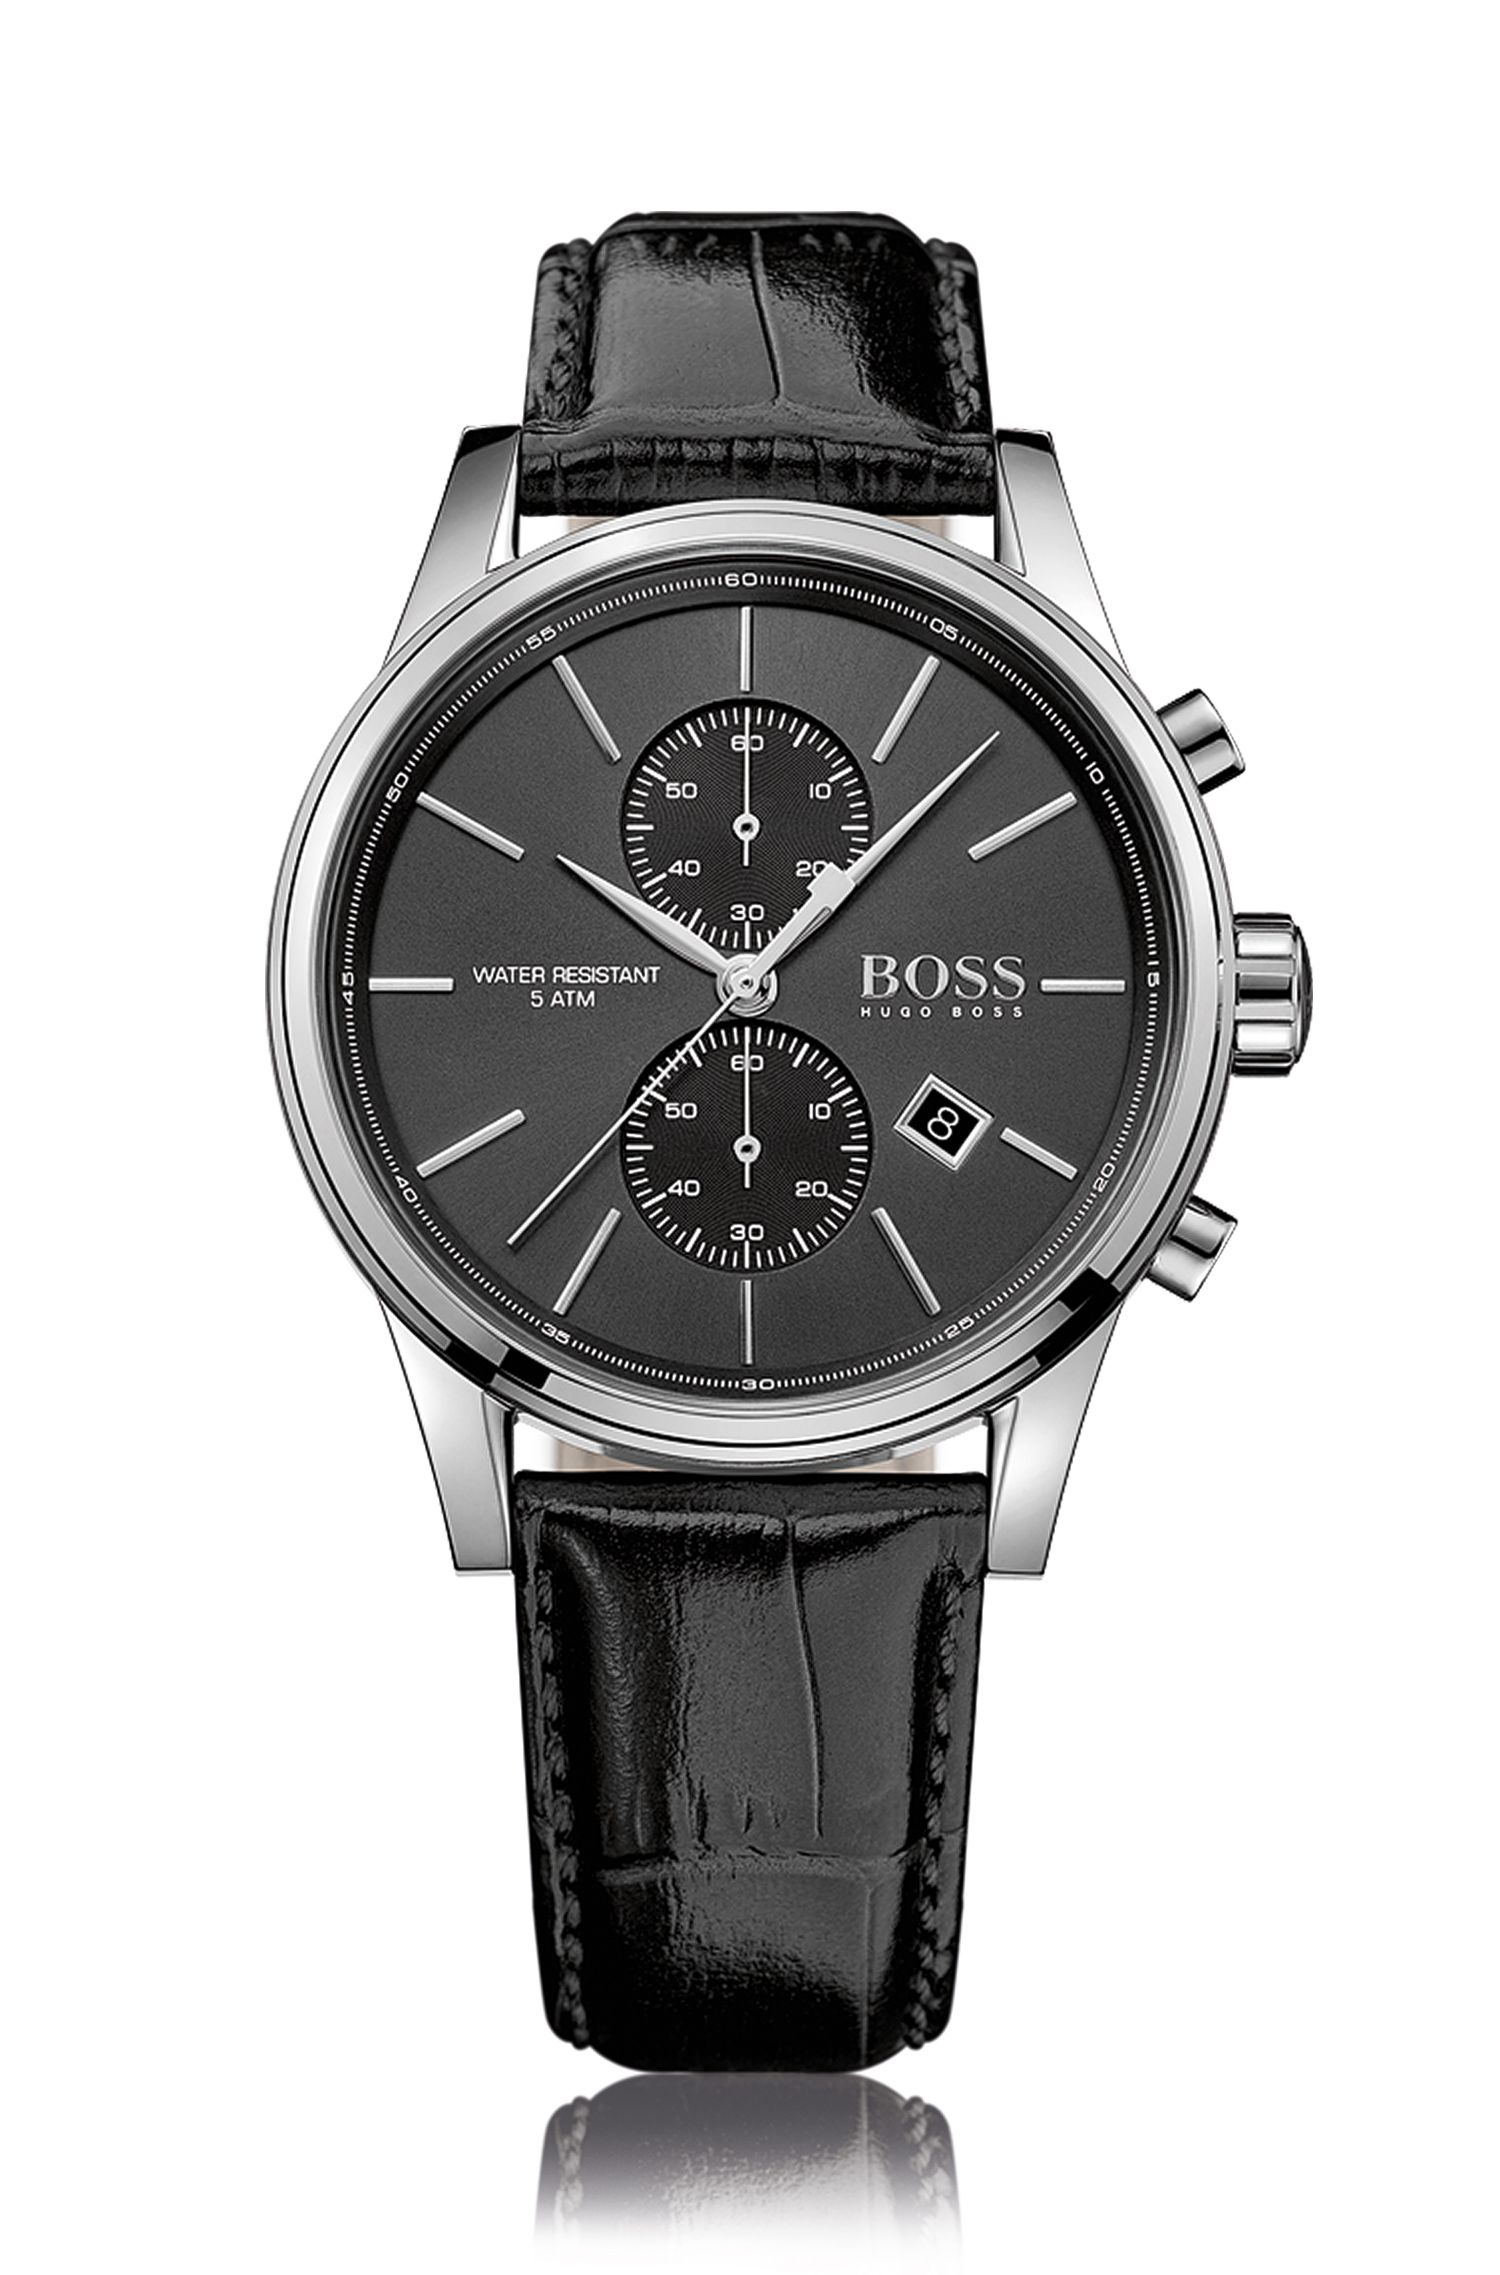 Polished stainless-steel two-eye chronograph watch with black sunray dial and leather strap